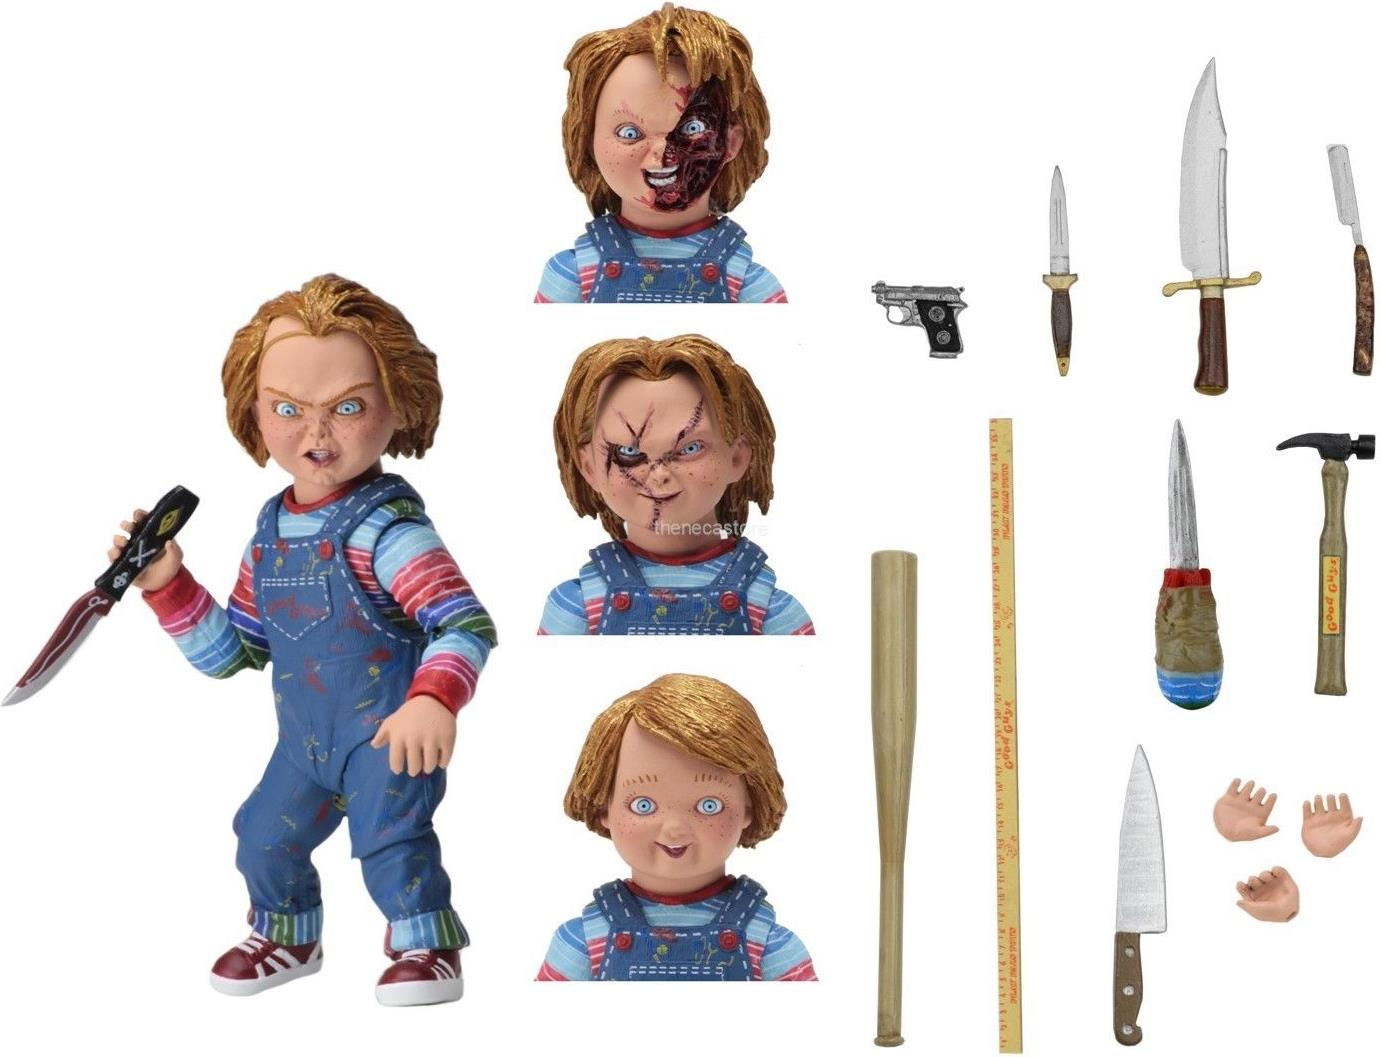 NECA 2017 Chucky 4 inch Figure - Ultimate Chucky  NECA, Chucky, Action Figures, 2017